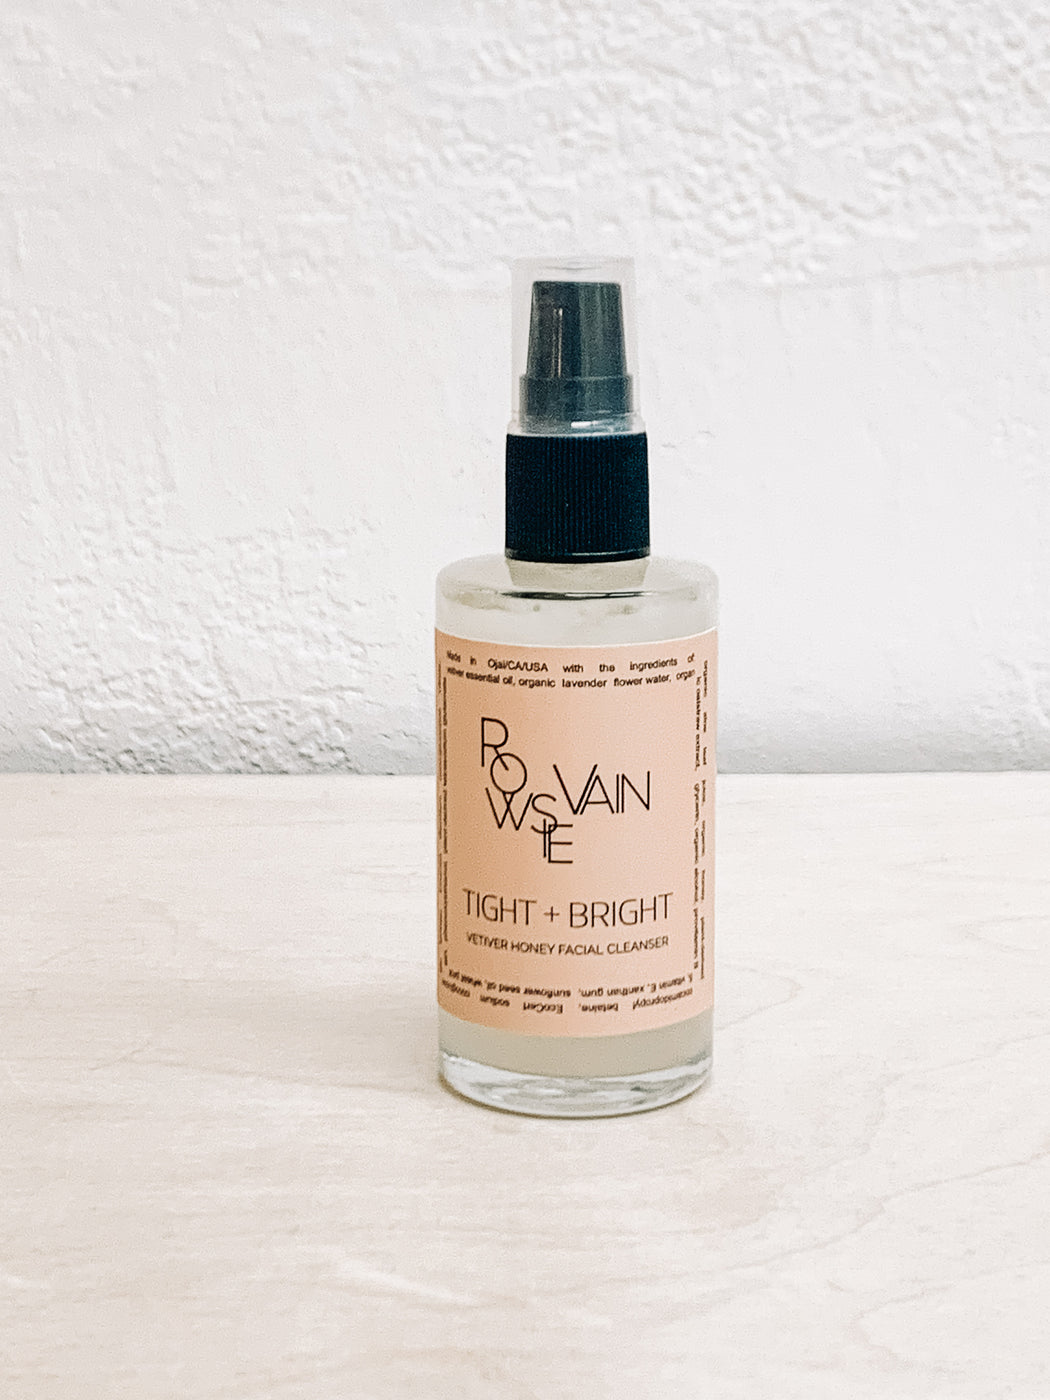 Rowsie Vain- Tight and Bright Face Cleanser